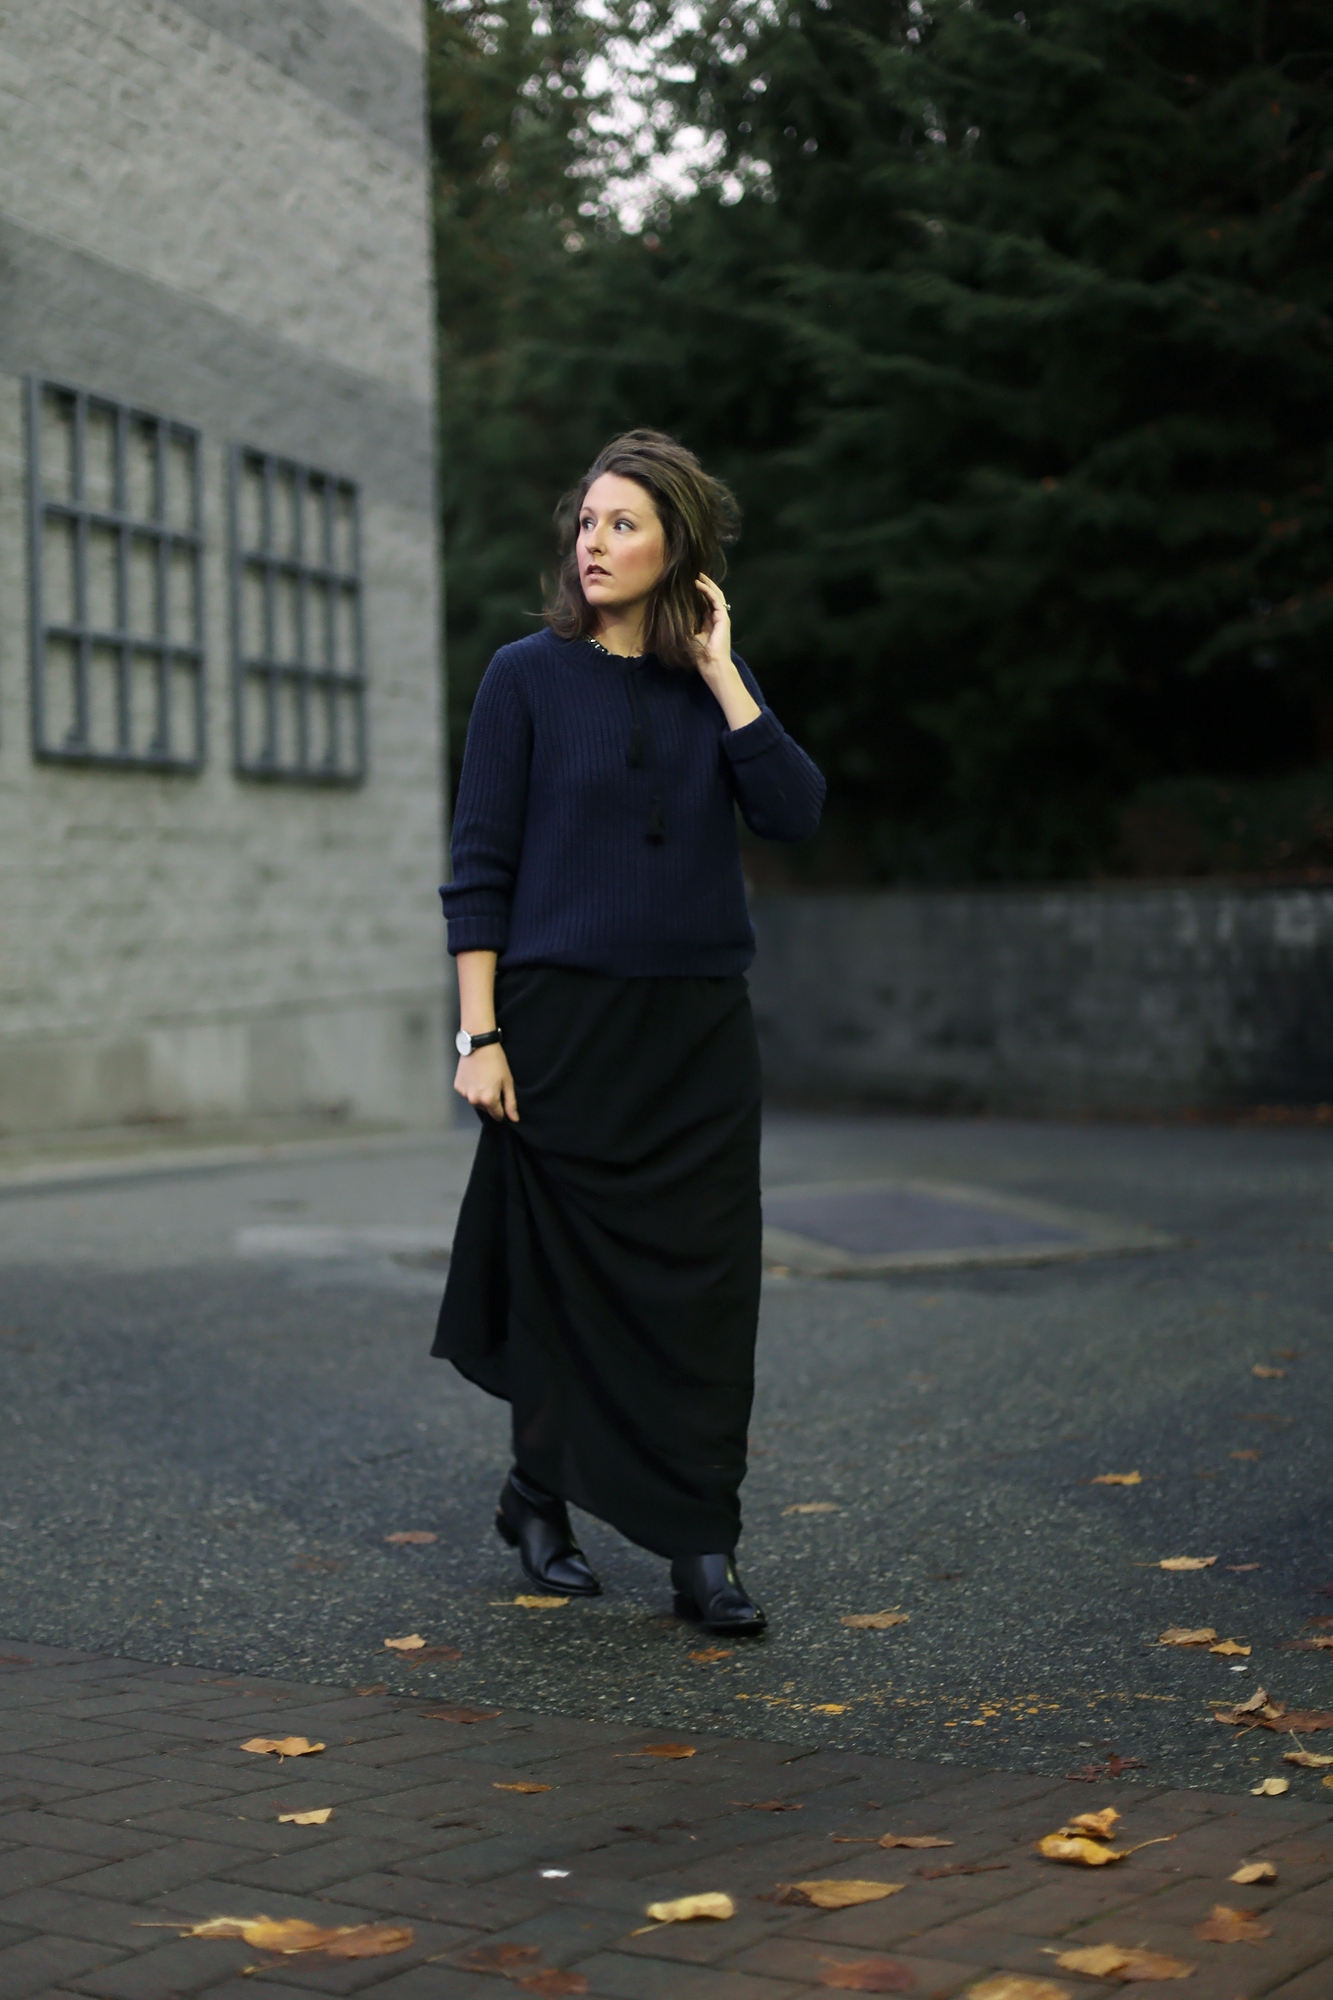 How to style a maxi dress in the fall. Love this minimalist fall look.